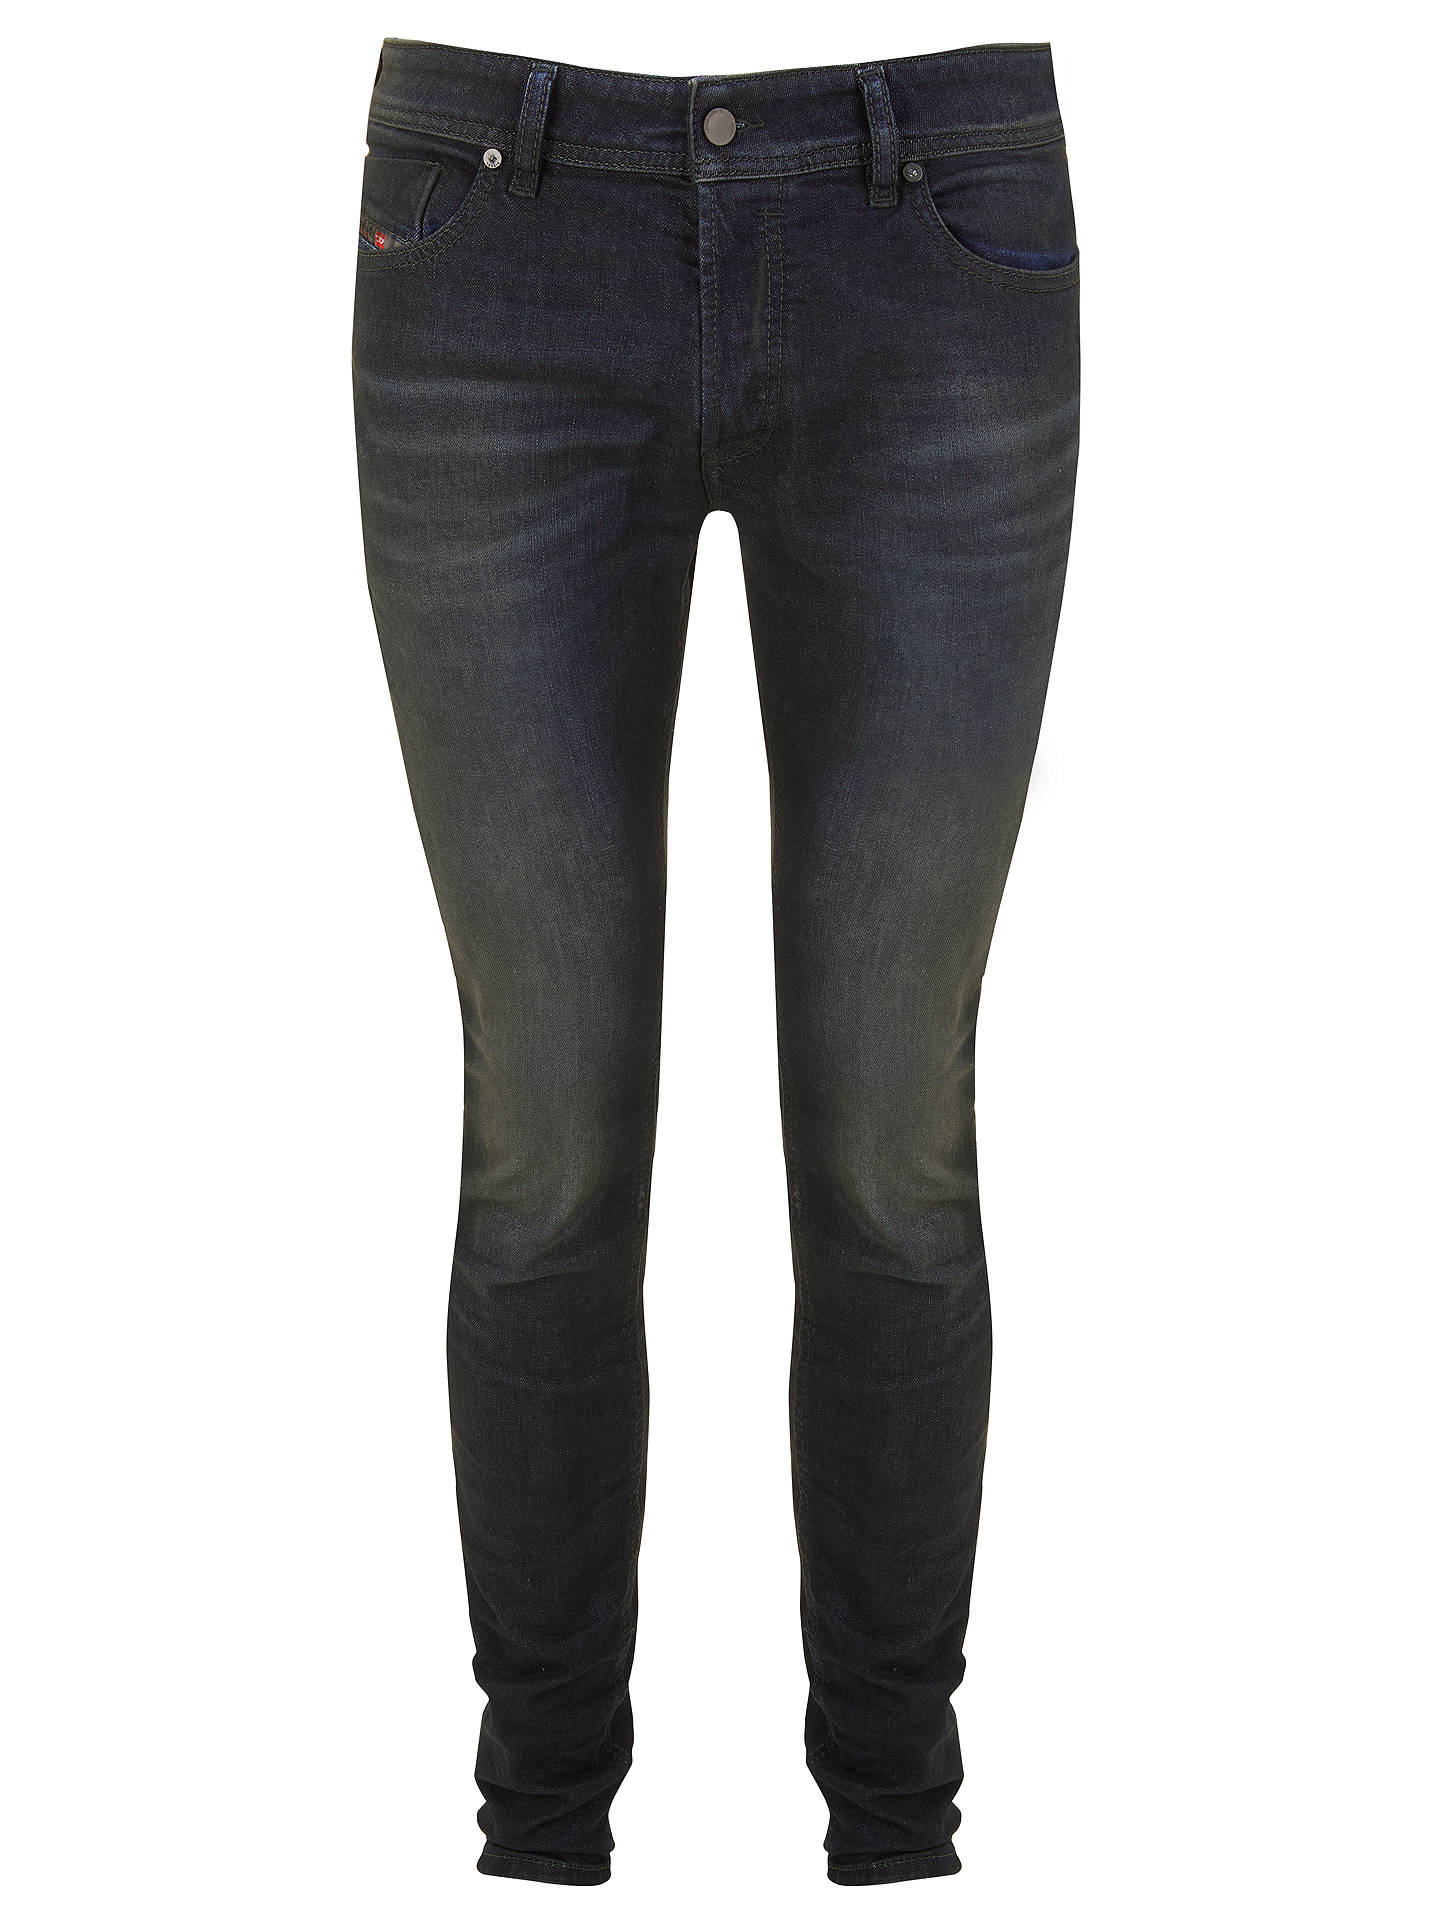 BuyDiesel Sleenker Skinny Jeans, Dark Blue 0842Q, 30S Online at johnlewis.com